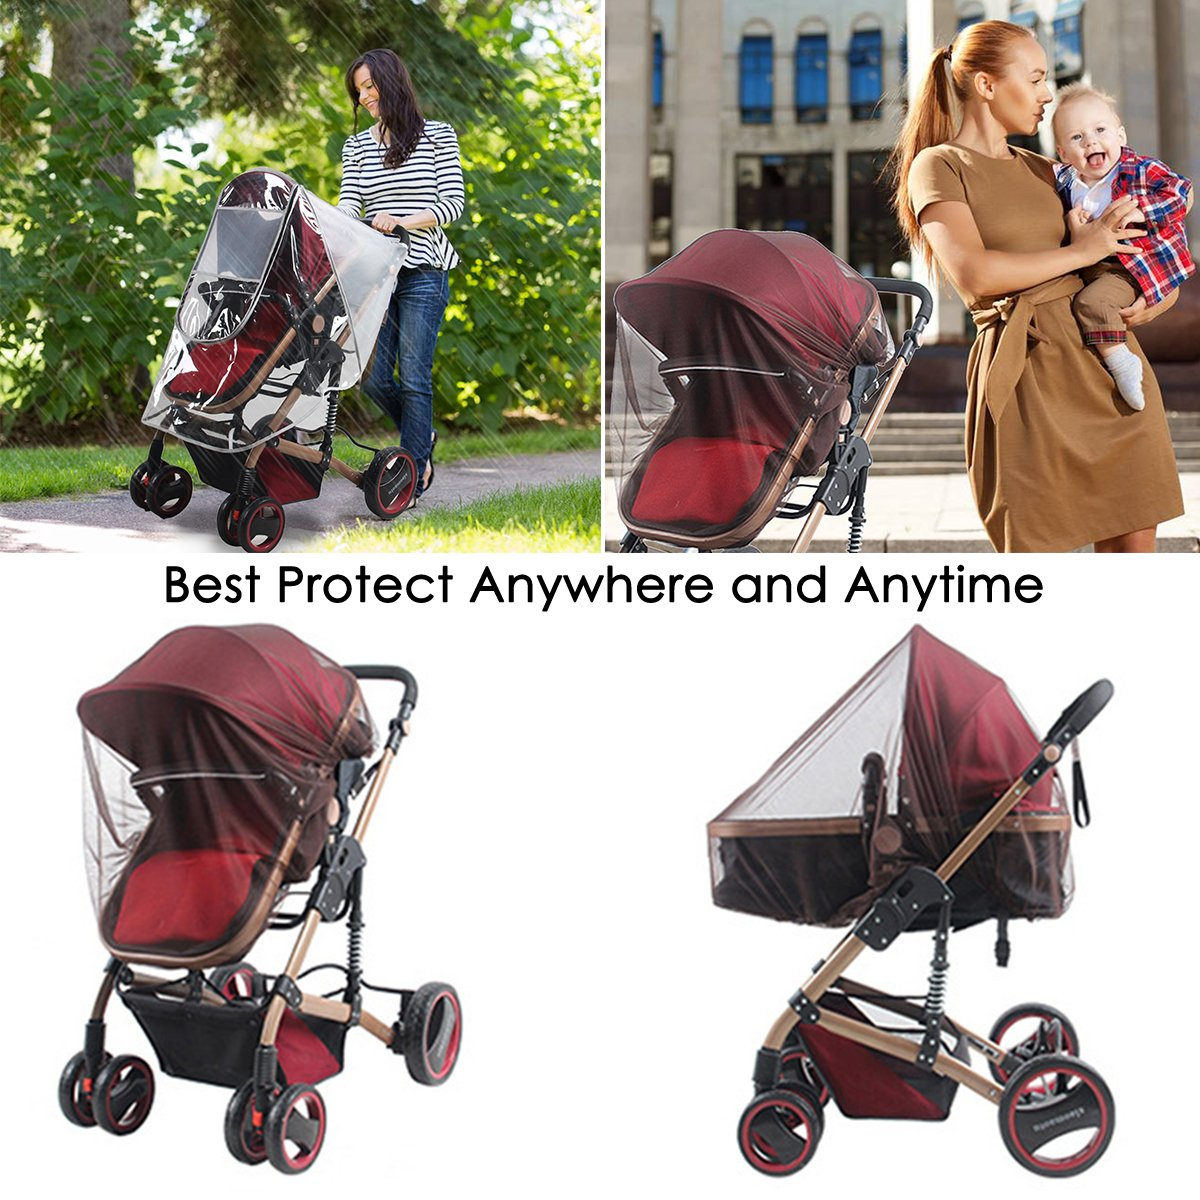 Polishing Cover /& Zipper Windproof Protection Baby Stroller Rain Cover Mosquito Net for Outdoor Indoor Yinuoday Baby Stroller Rain Cover and Mosquito Net Weather Shield Universal Waterproof